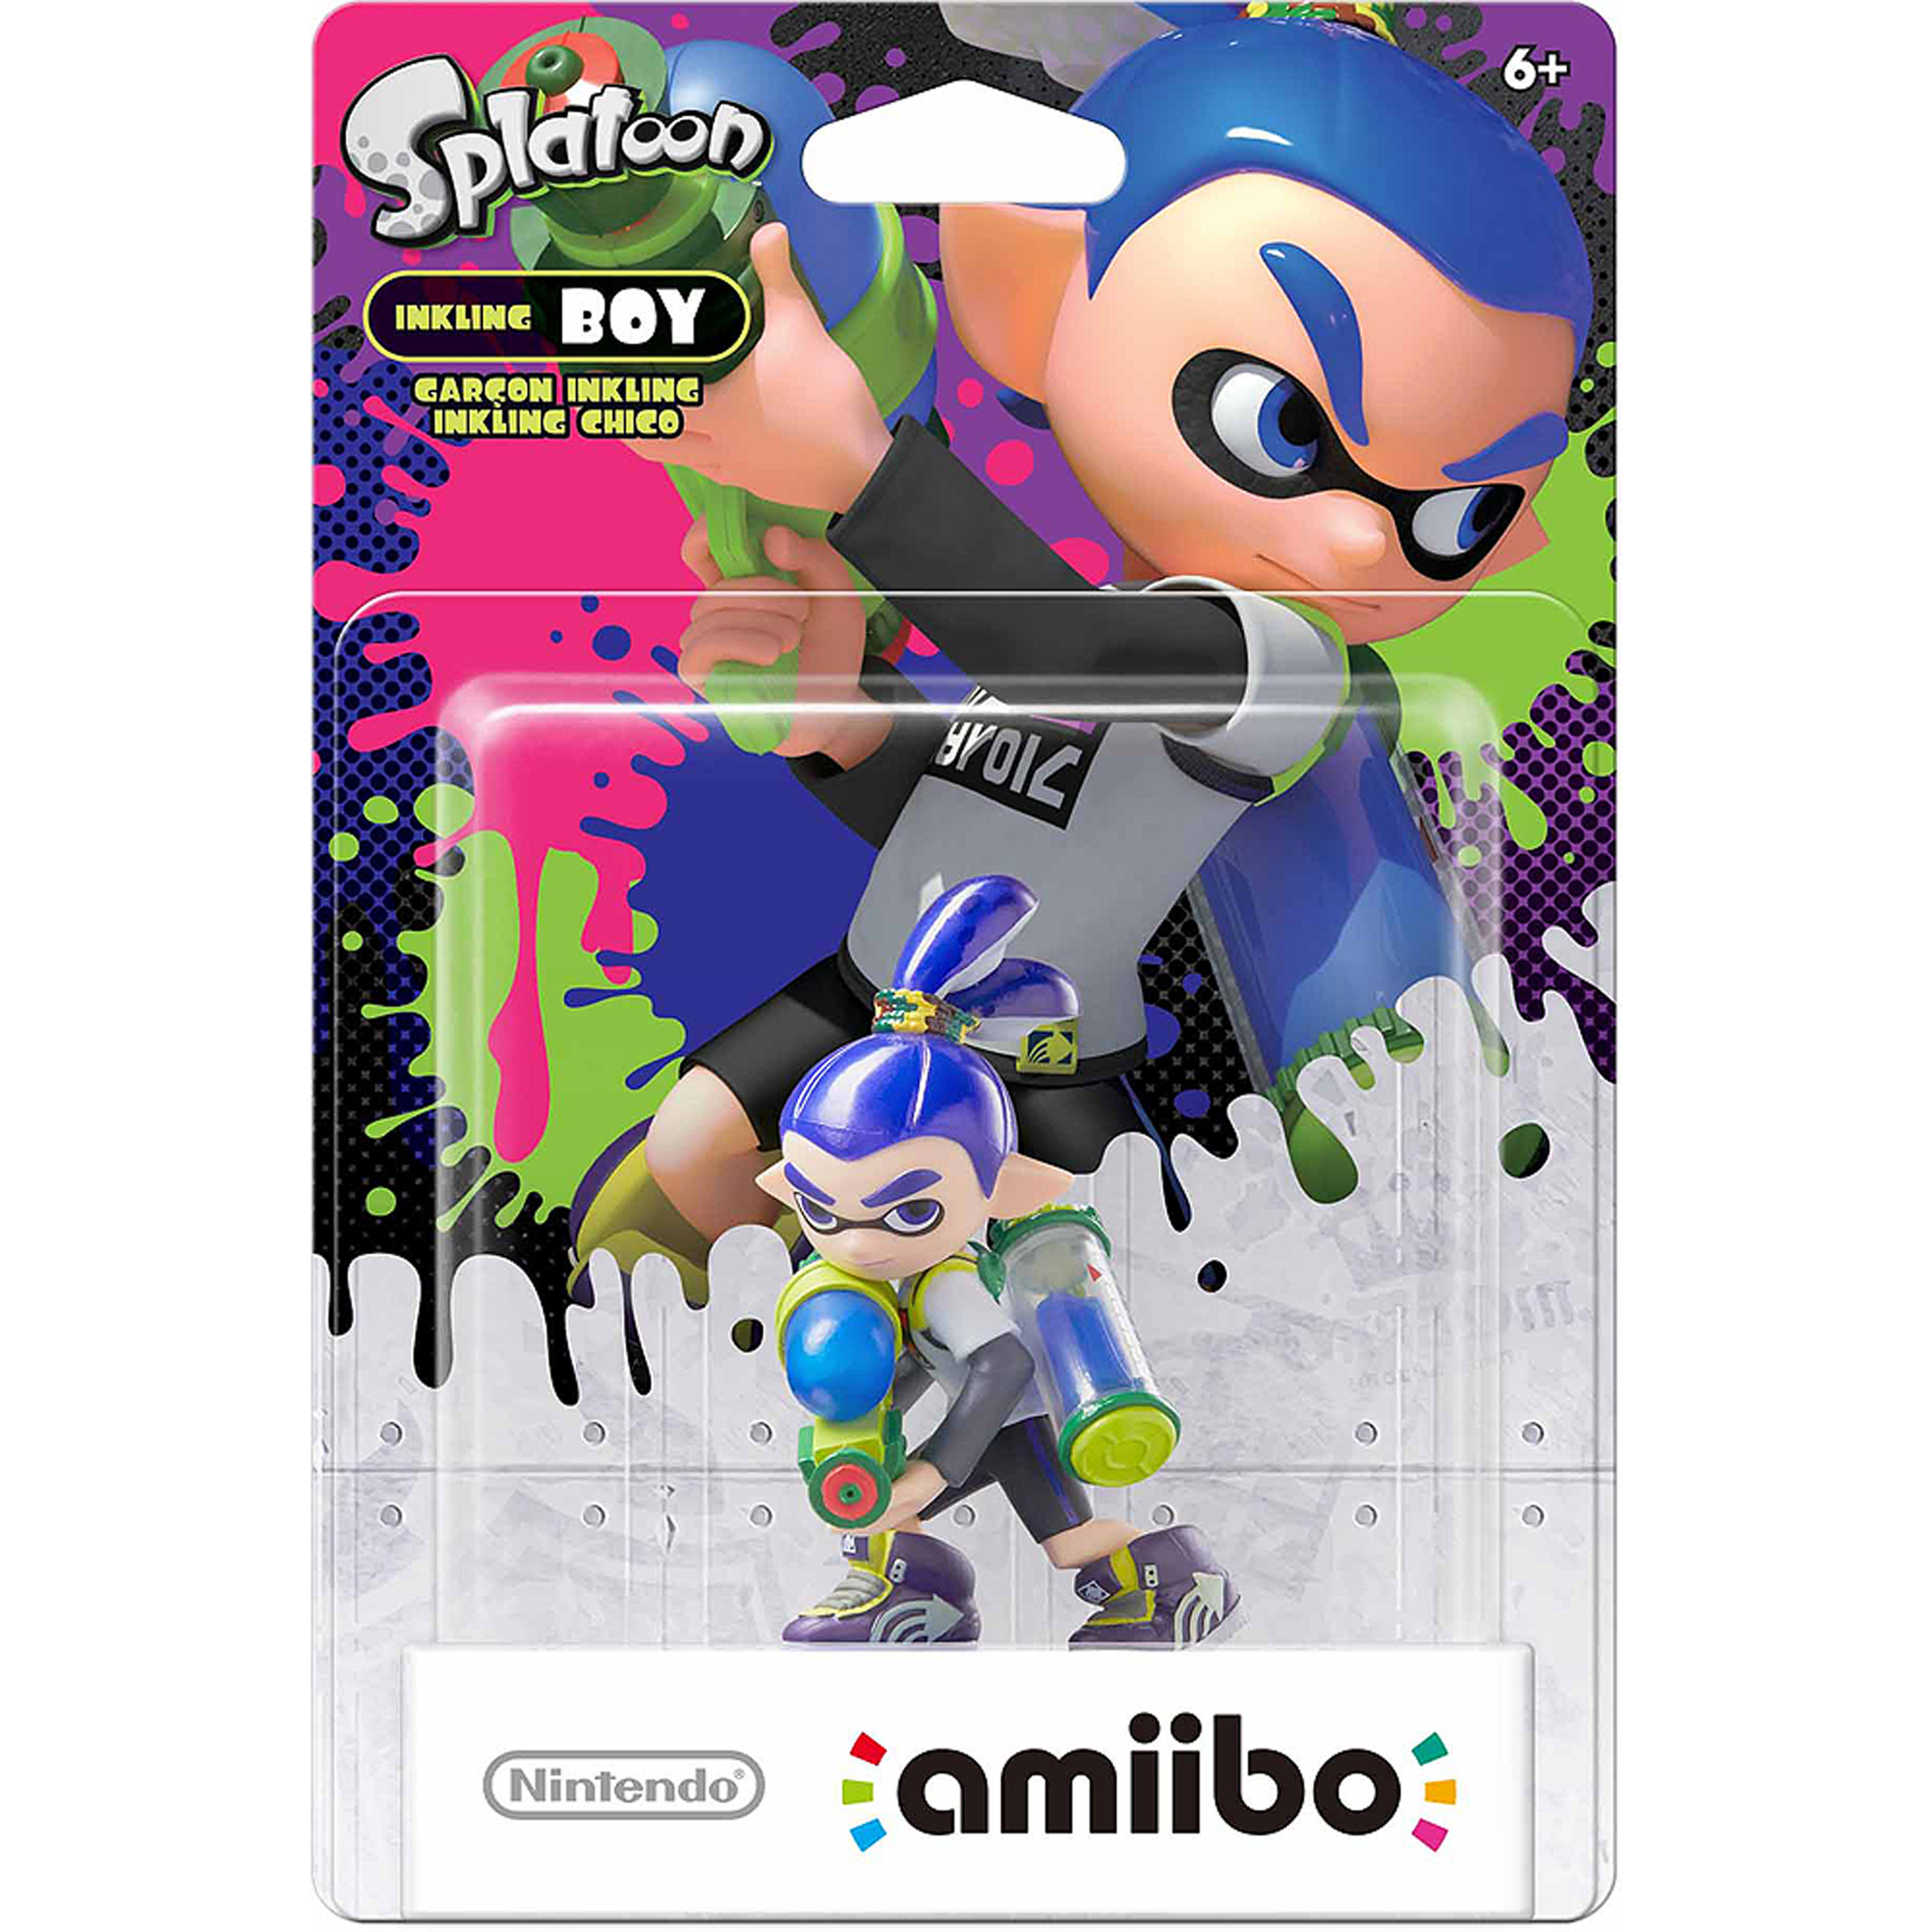 Inkling Boy Splatoon Series Amiibo (Nintendo WiiU or Nintendo 3DS)